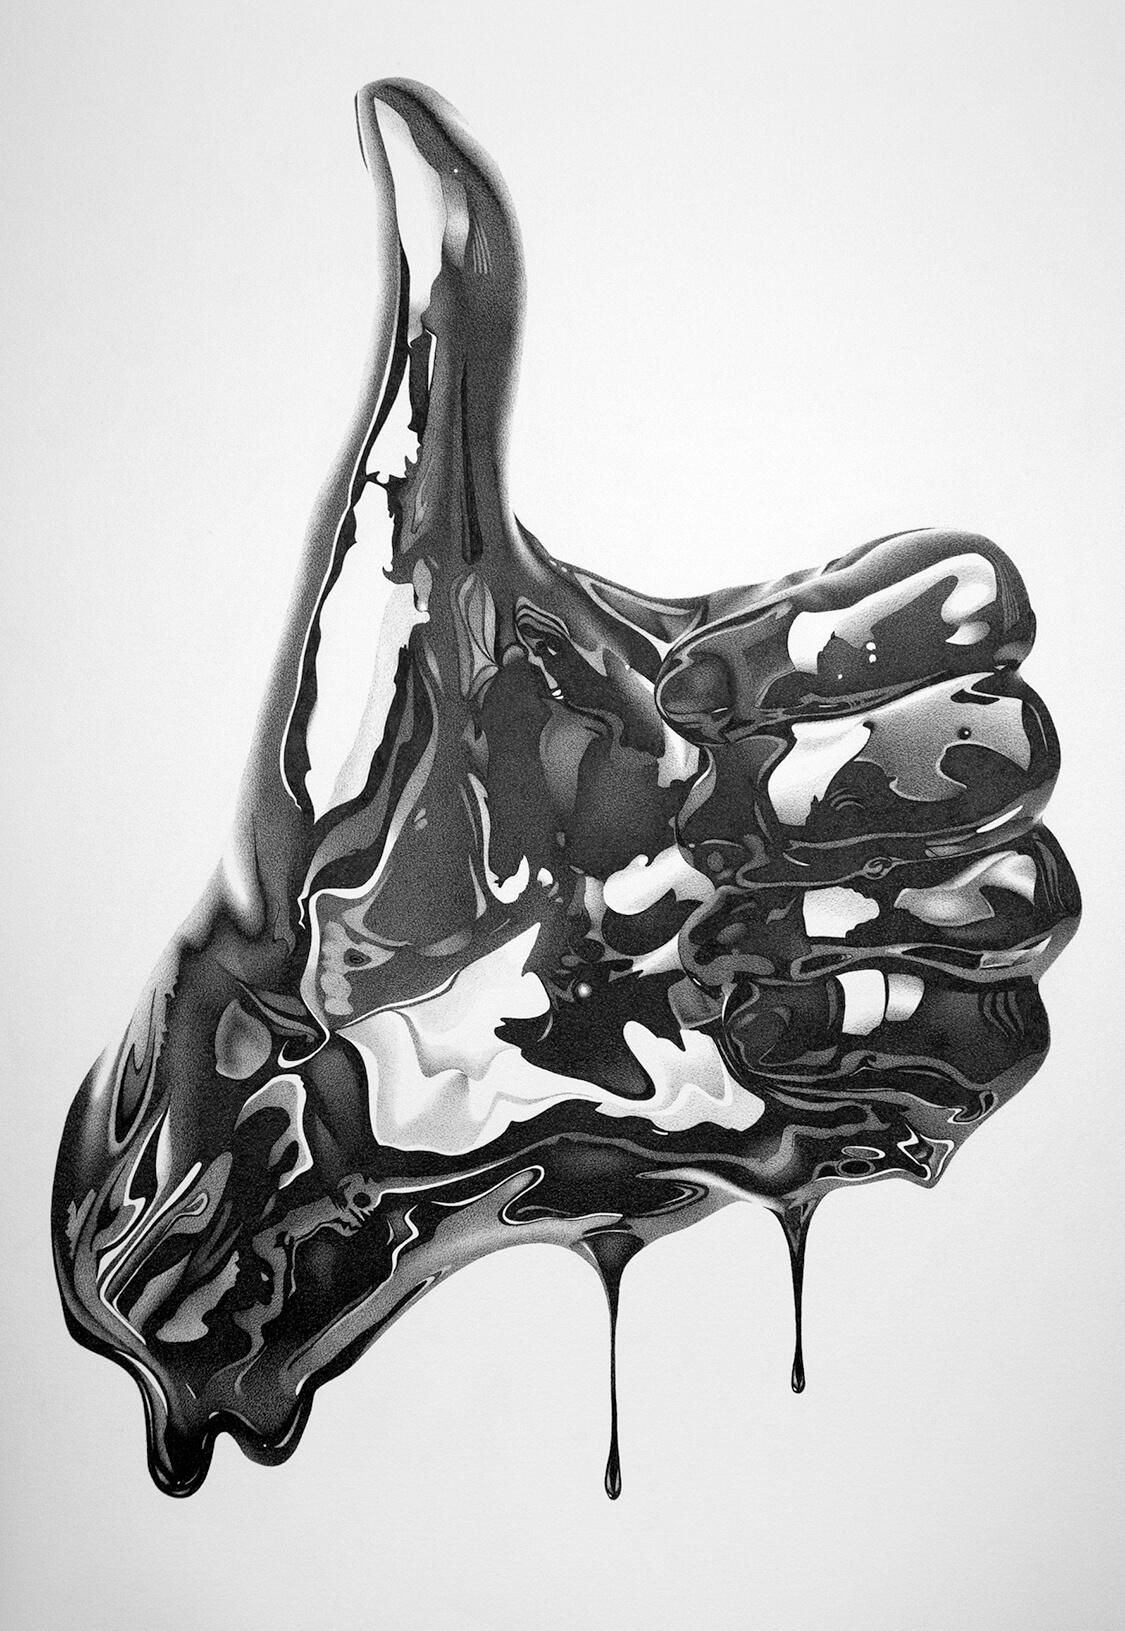 Photorealistic drawings_Alessandro Paglia